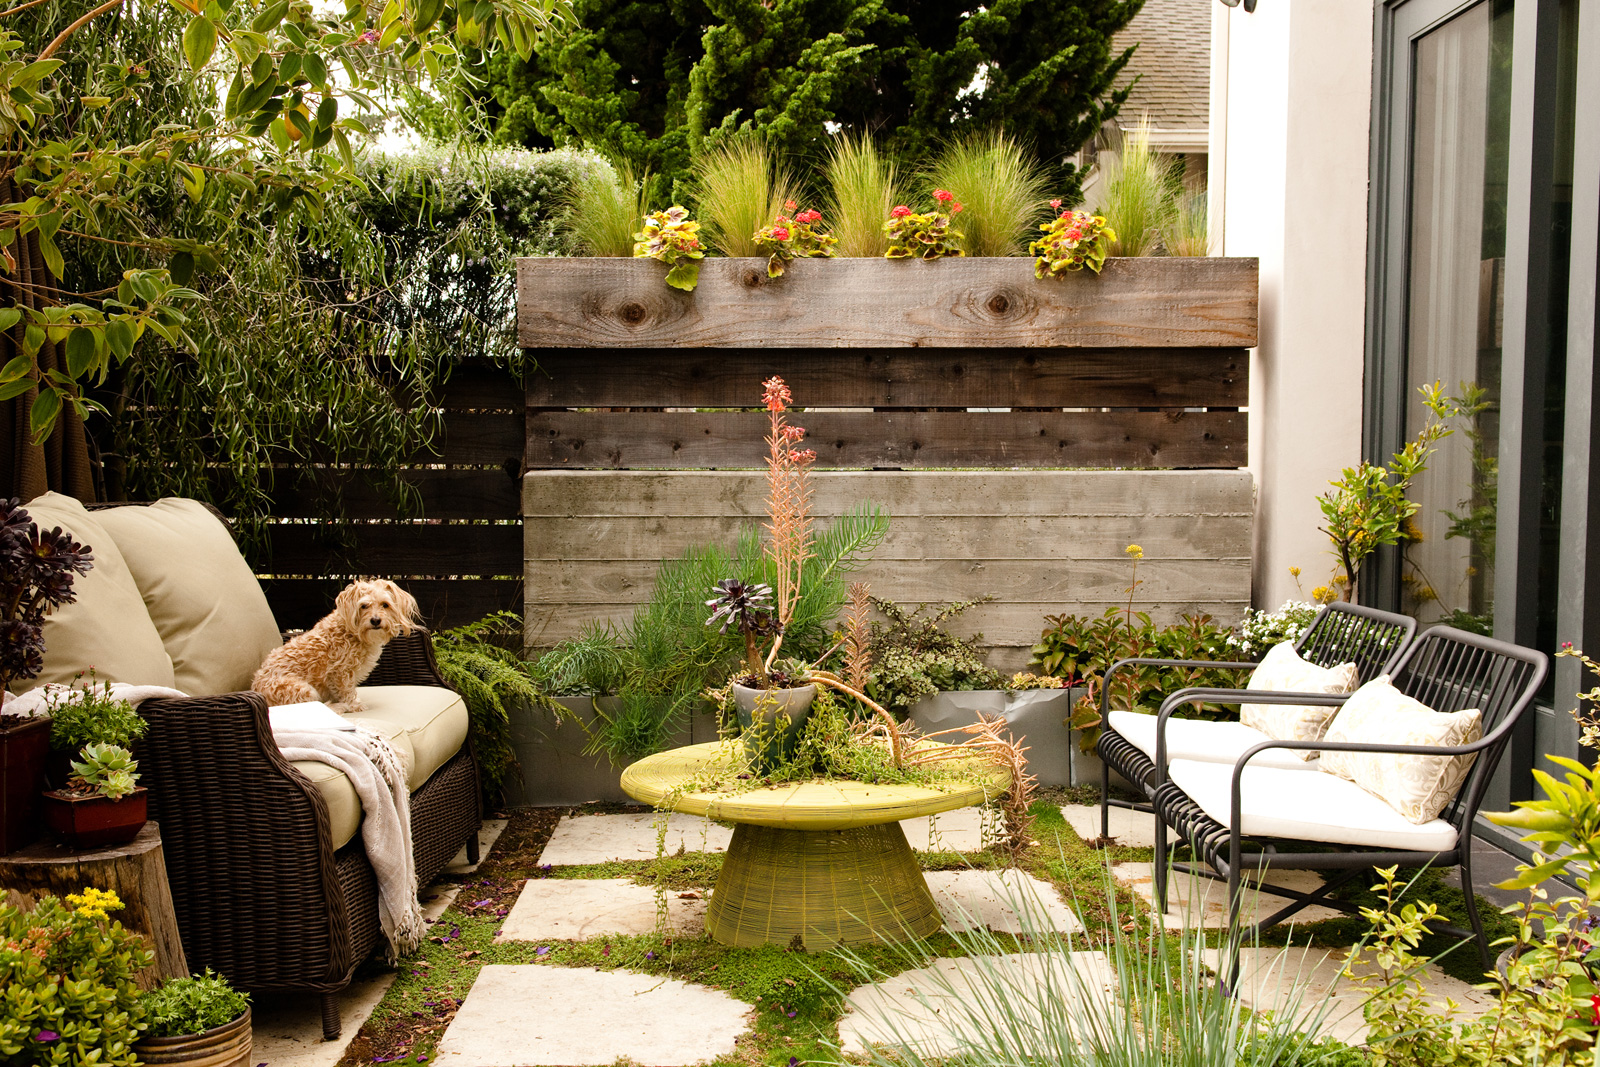 Small outdoor patio decorating ideas - Tiny Patio Ideas 31 Brilliant Porch Decorating Ideas That Are Worth Stealing Small Patio Small Backyard